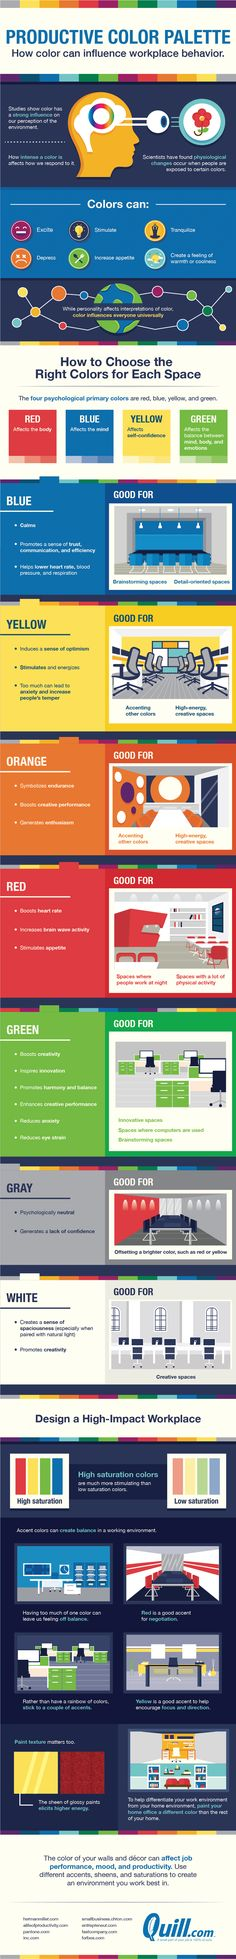 Productive Palette: How Color Can Influence Workplace Behavior #Infographic #Workplace